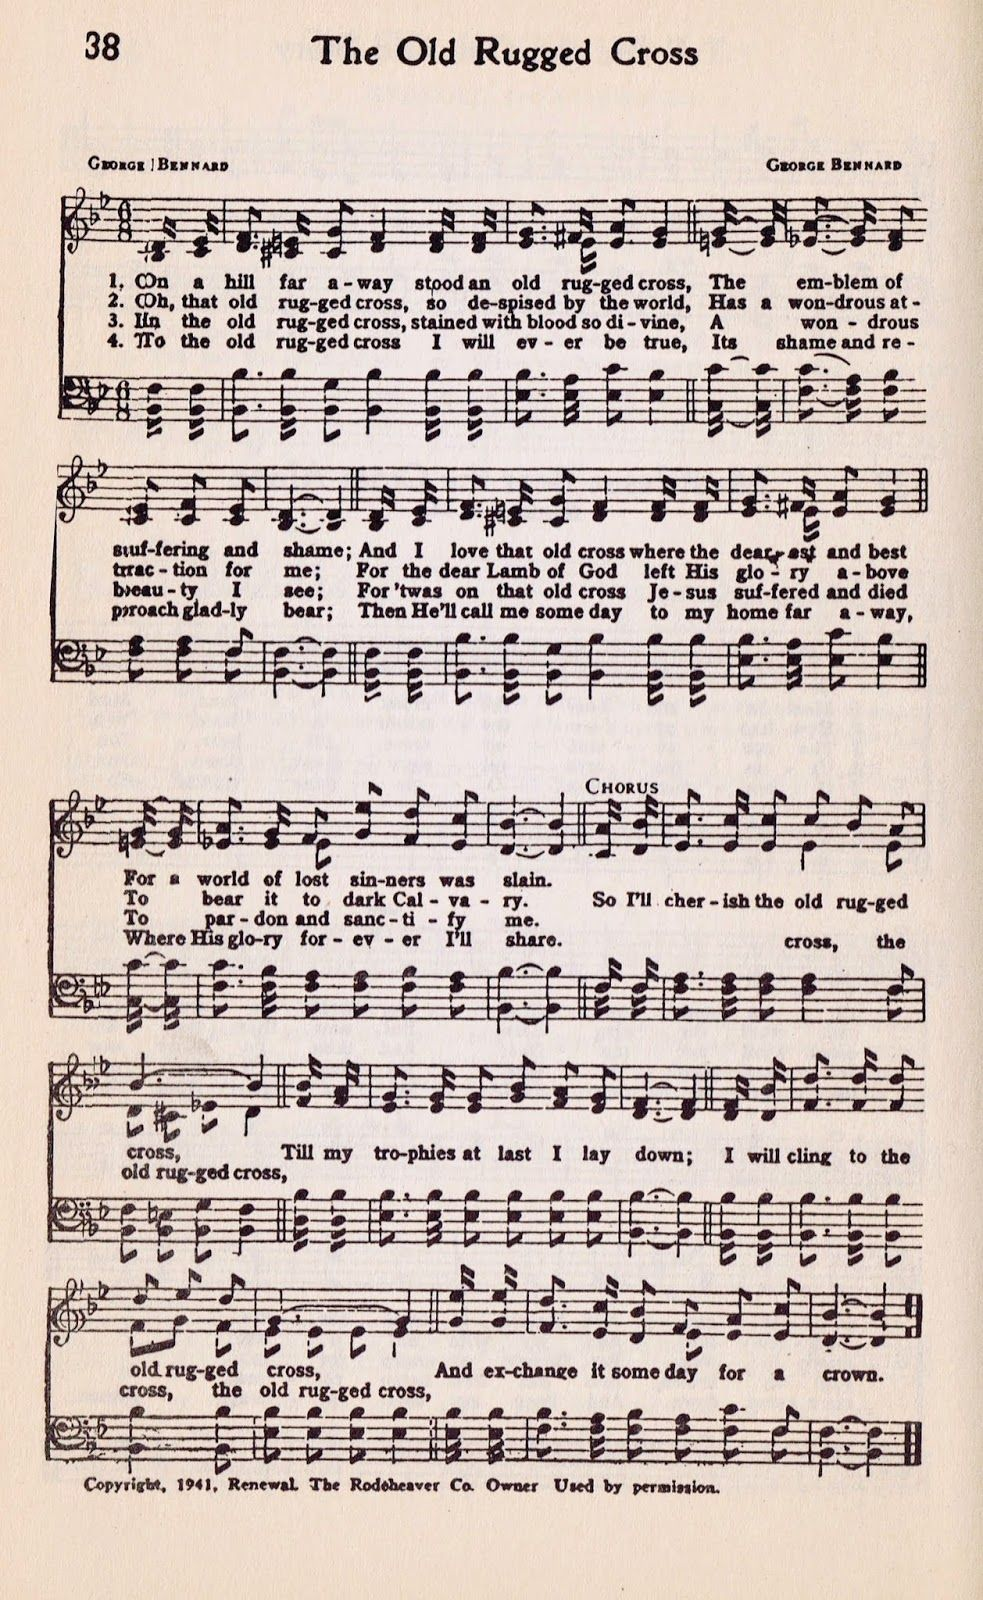 Slobbery image for free-printable southern gospel song lyrics